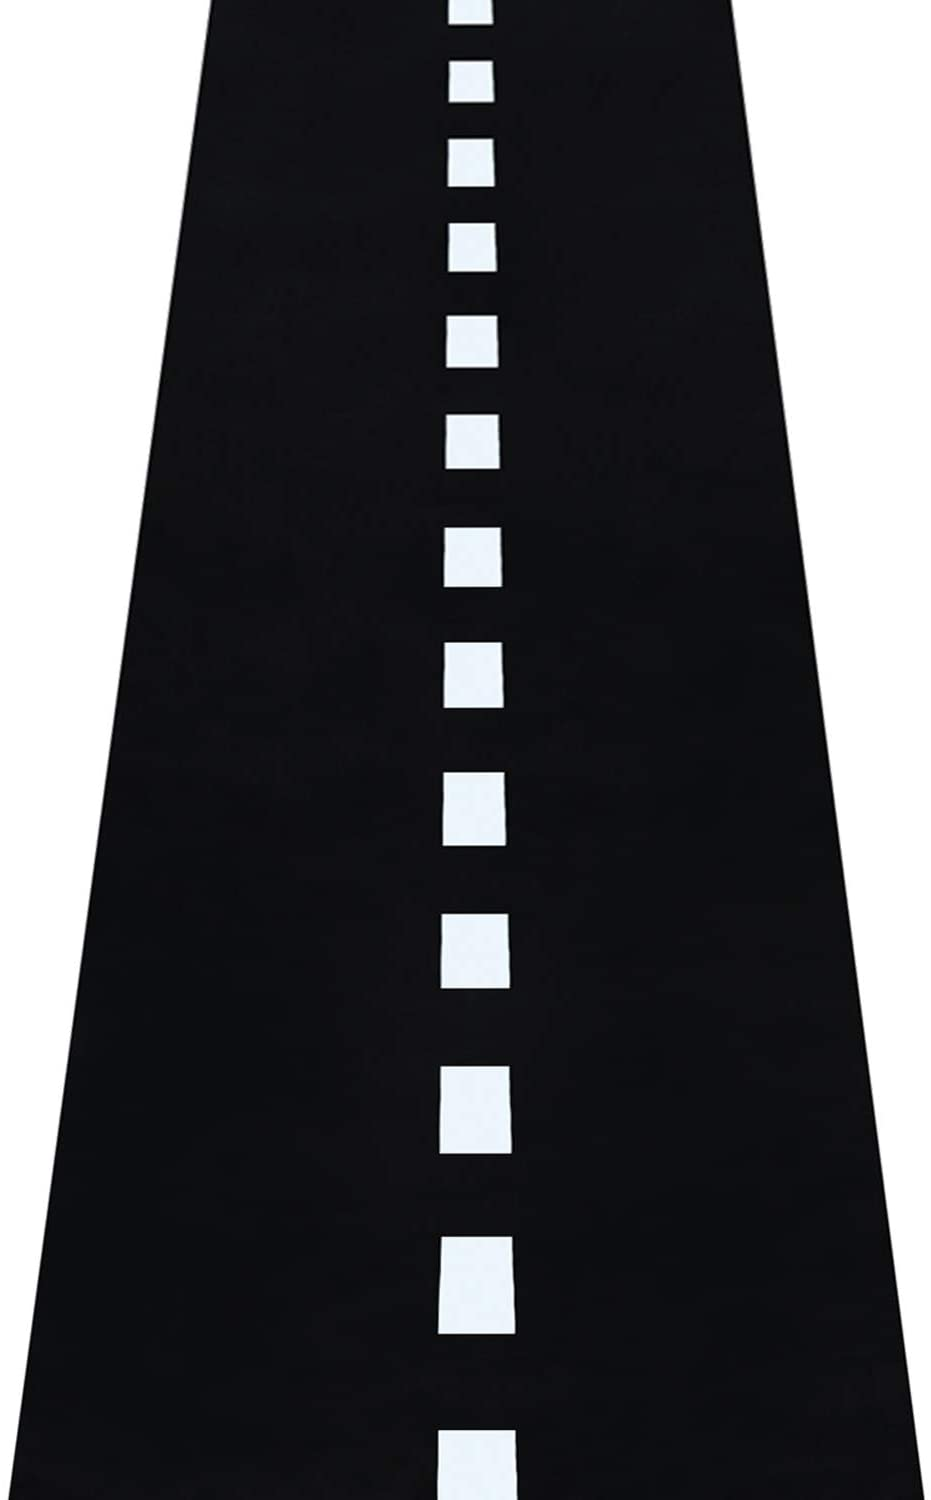 Novelty Place Racetrack Floor/Ground/Table Runner - 10 Ft x 2 Ft Black Race Track Running Mat - Sports Race Car Theme Party Entry Table Decorations